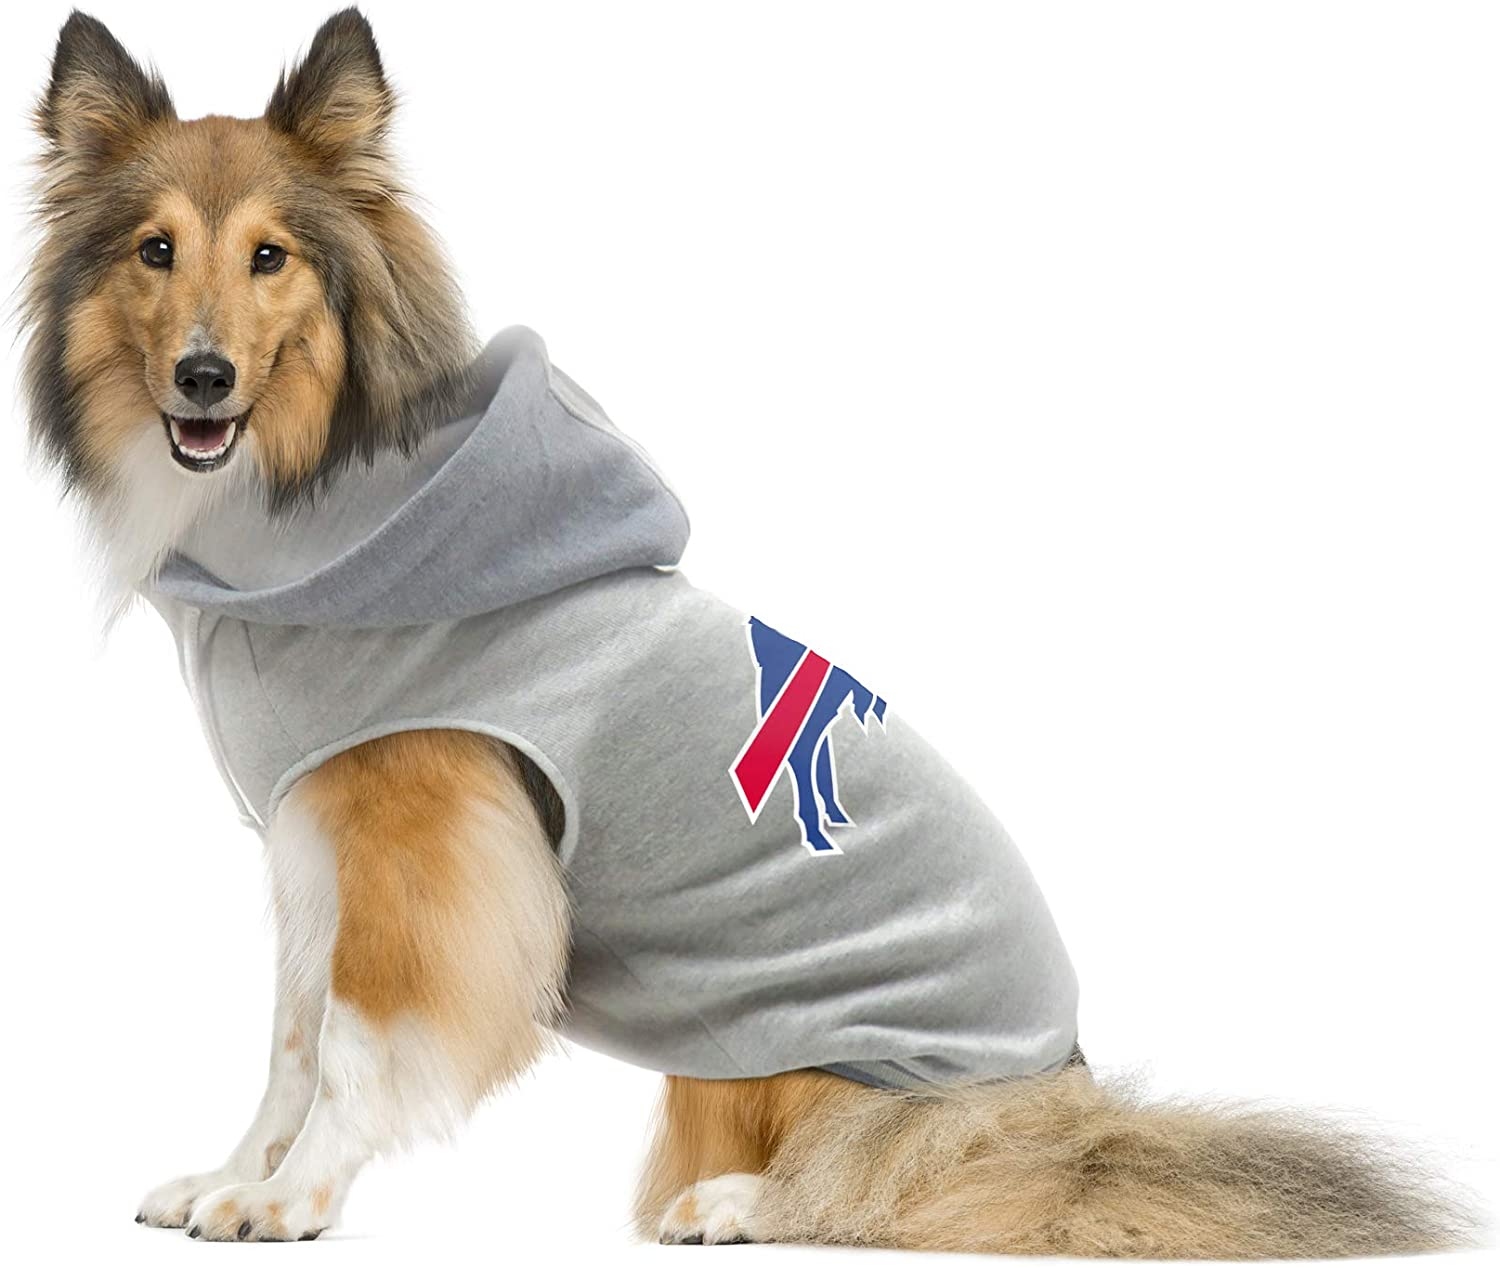 Large NFL Buffalo Bills Team Dog Sweatshirt